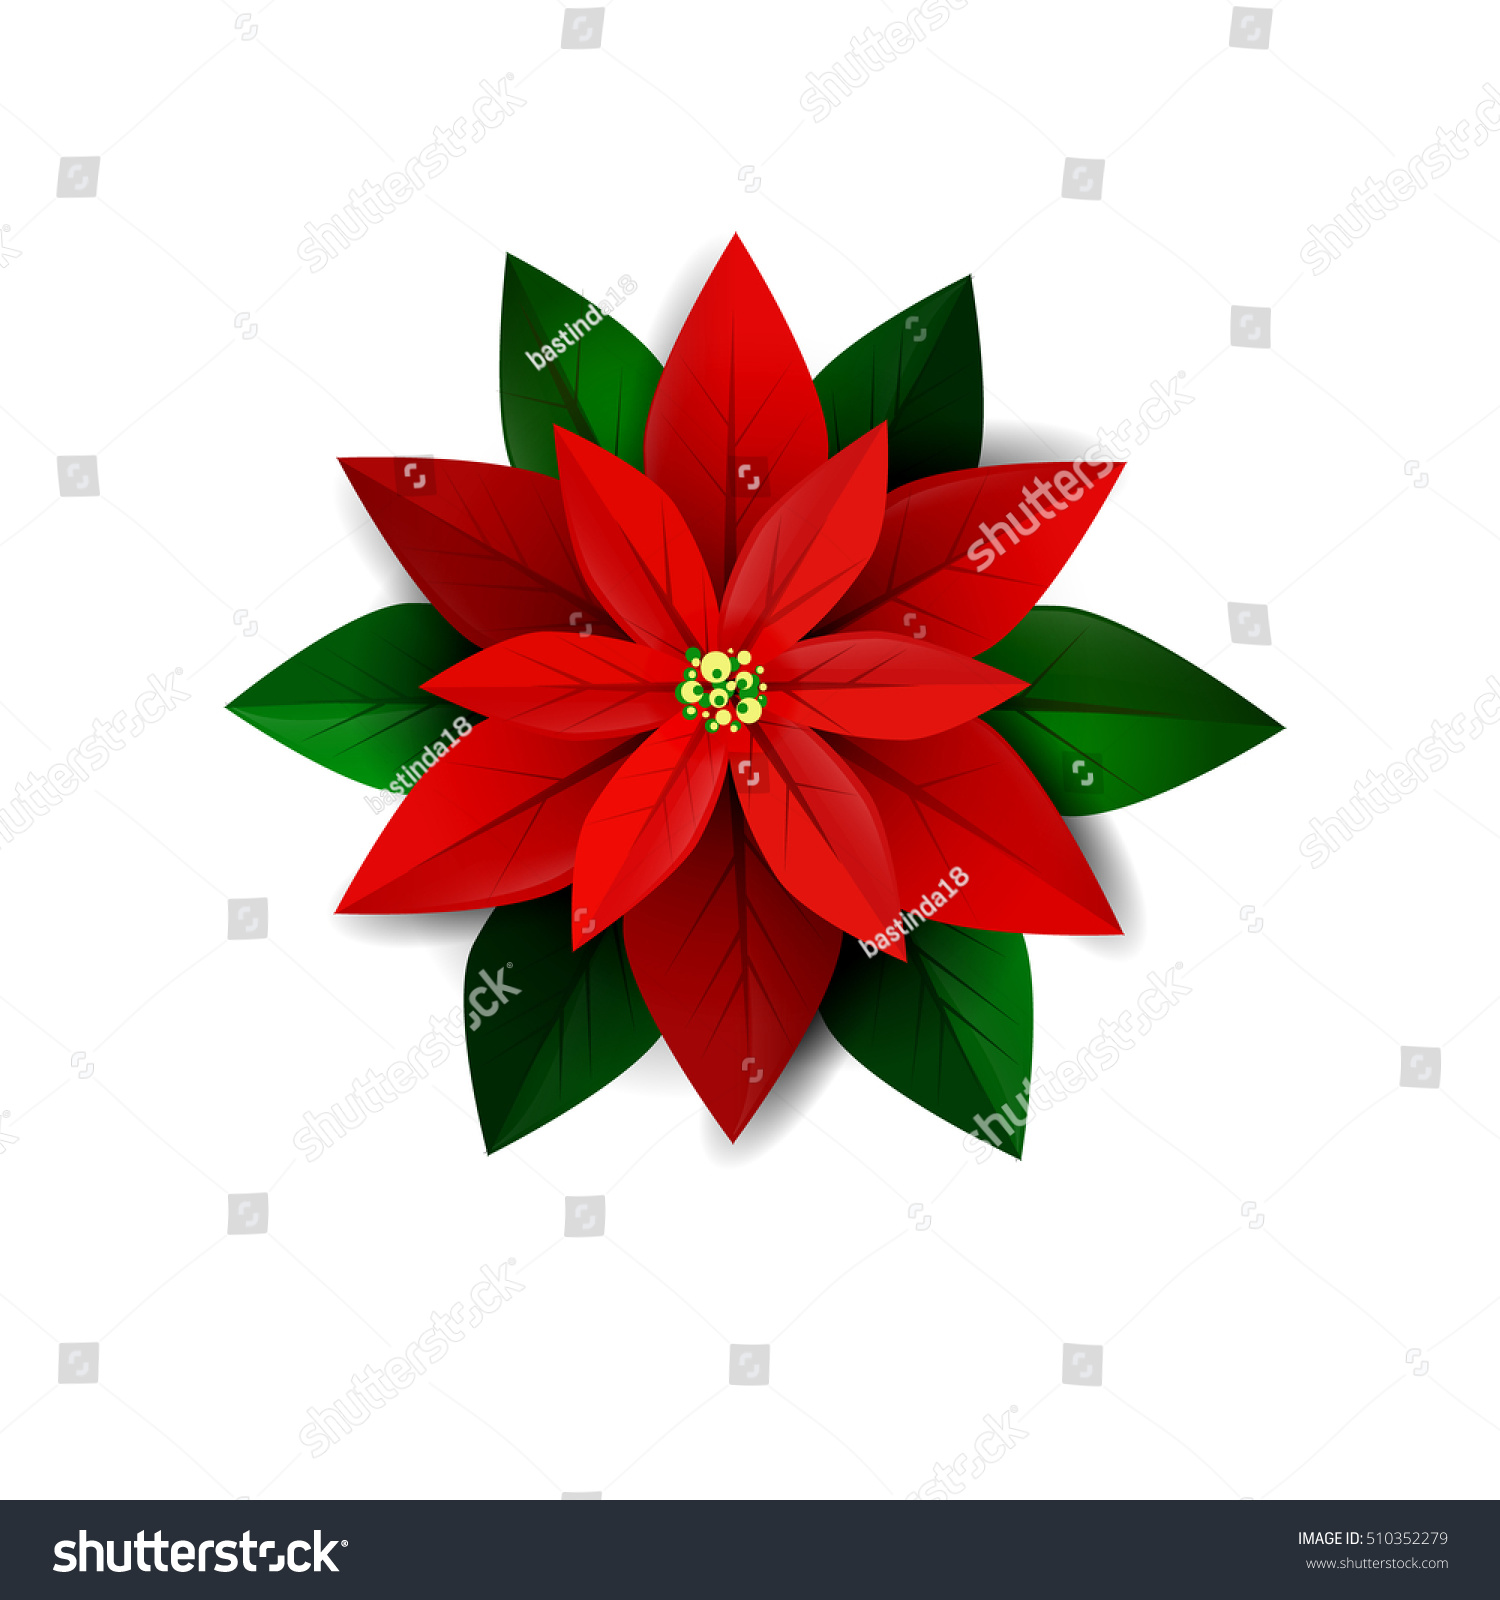 poinsettia flower symbol christmas stock vector 510352279